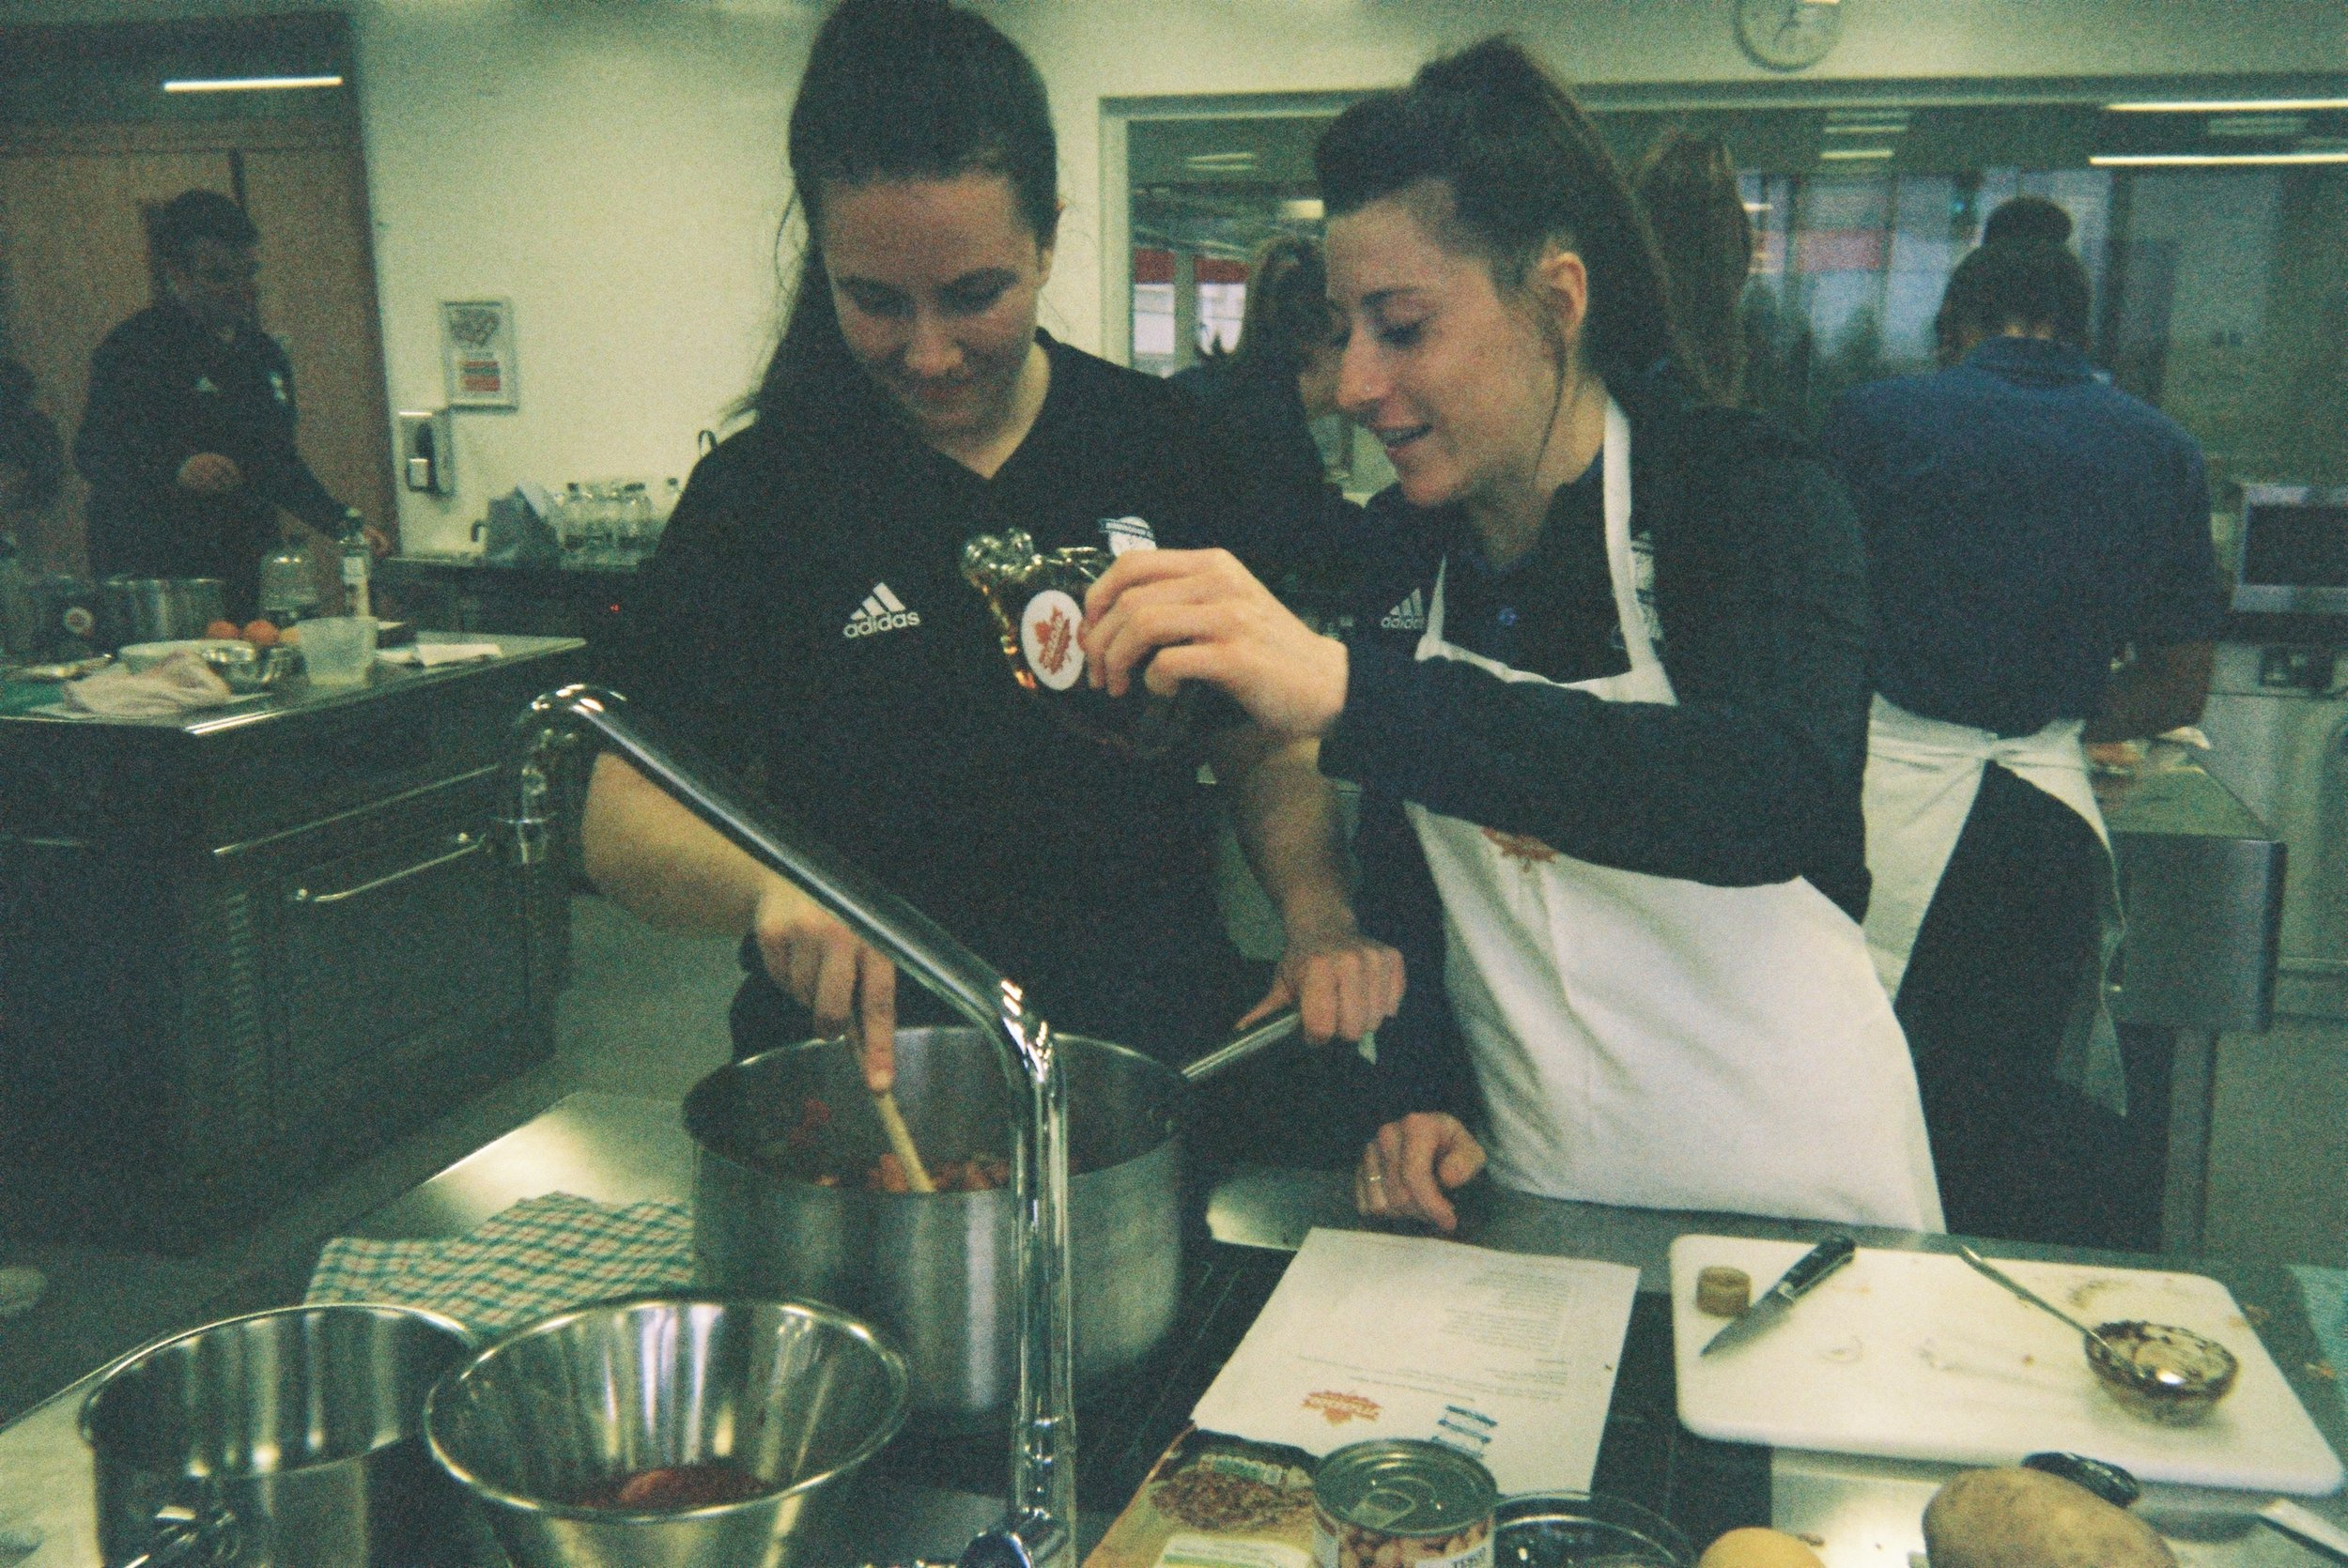 Maple (our main shirt sponsor) regularly holds cooking sessions for the team. Sponsors are really important in women's football and to do something off the pitch with the team is quite nice. It helps to increase team bonding and educates the younger girls on healthy nutrition.